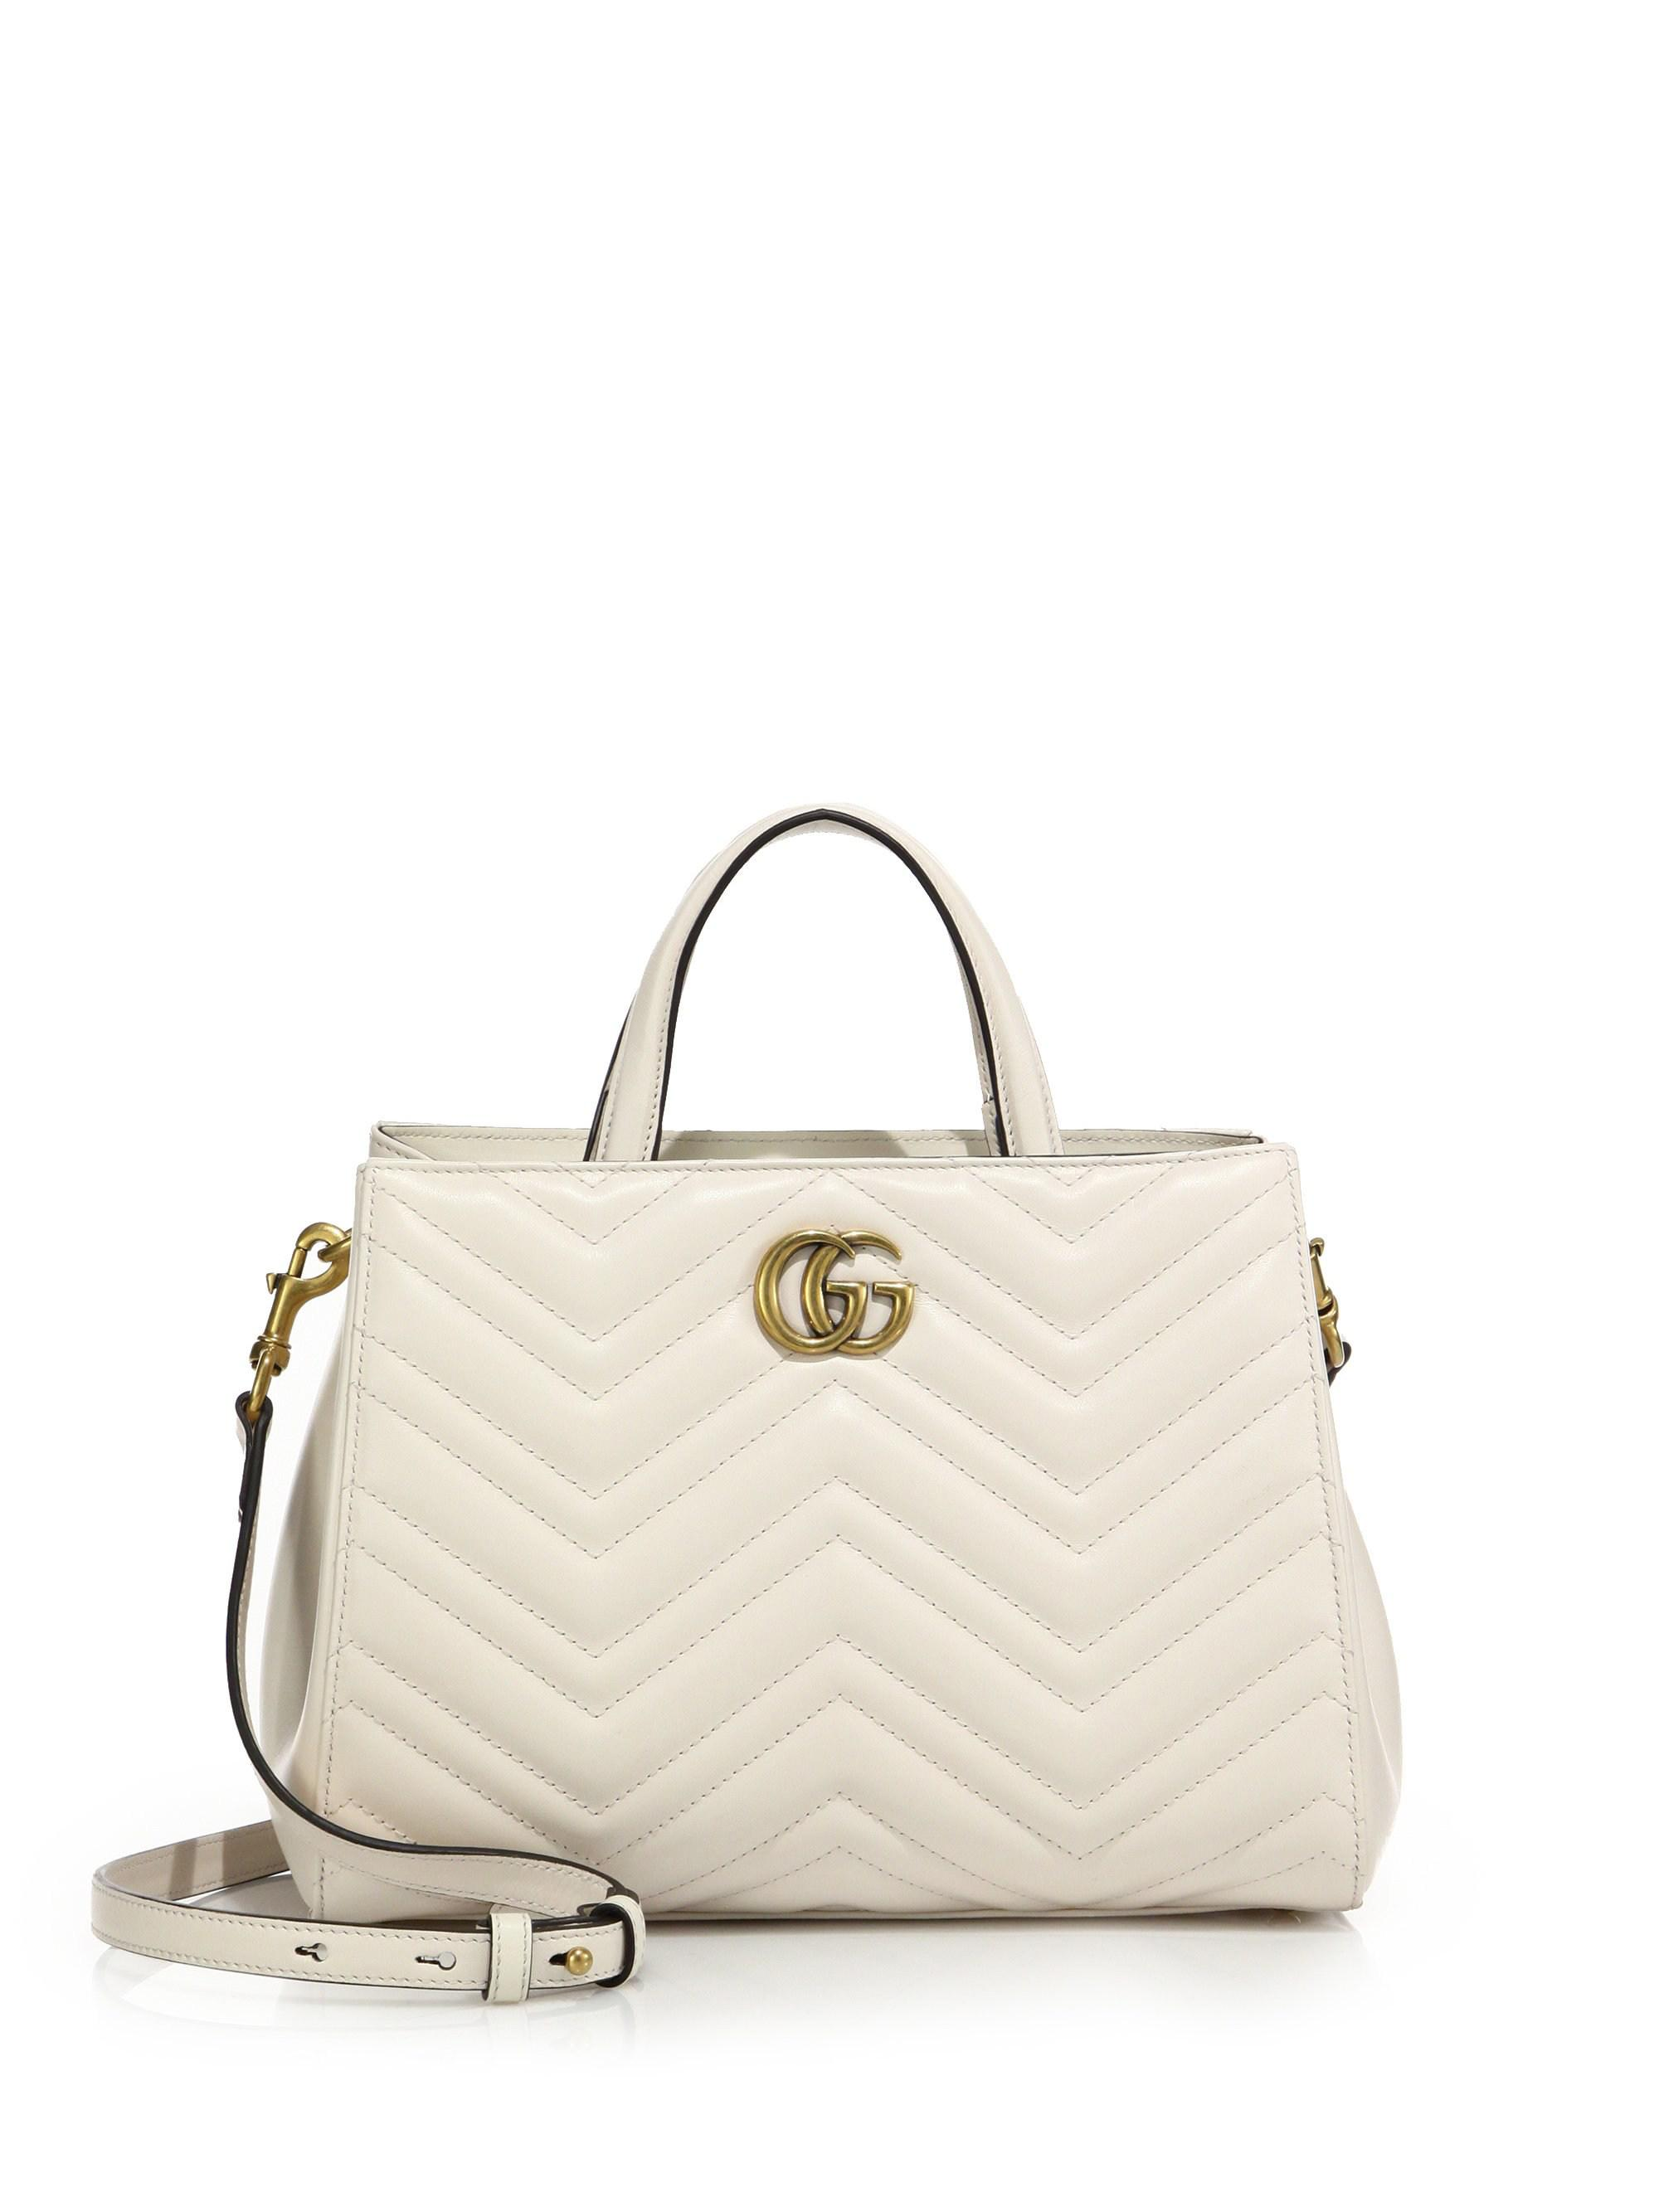 081dc2888a8f Gucci GG Marmont Matelasse Leather Top-Handle Tote in White - Lyst